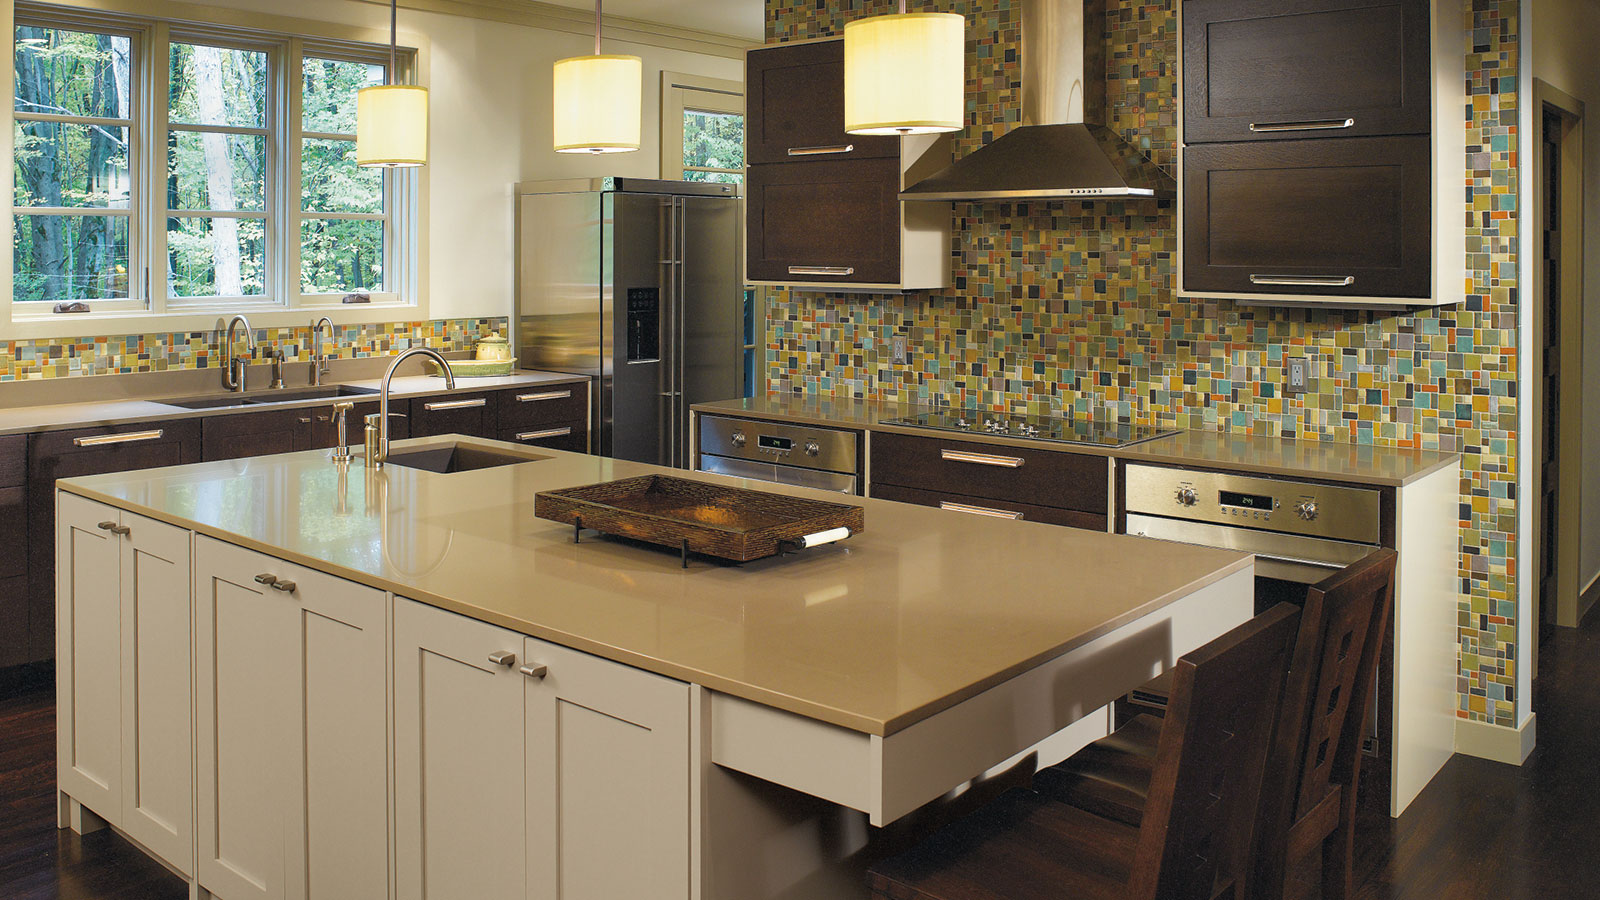 Quartersawn Oak Cabinets with Painted Kitchen Island - Omega